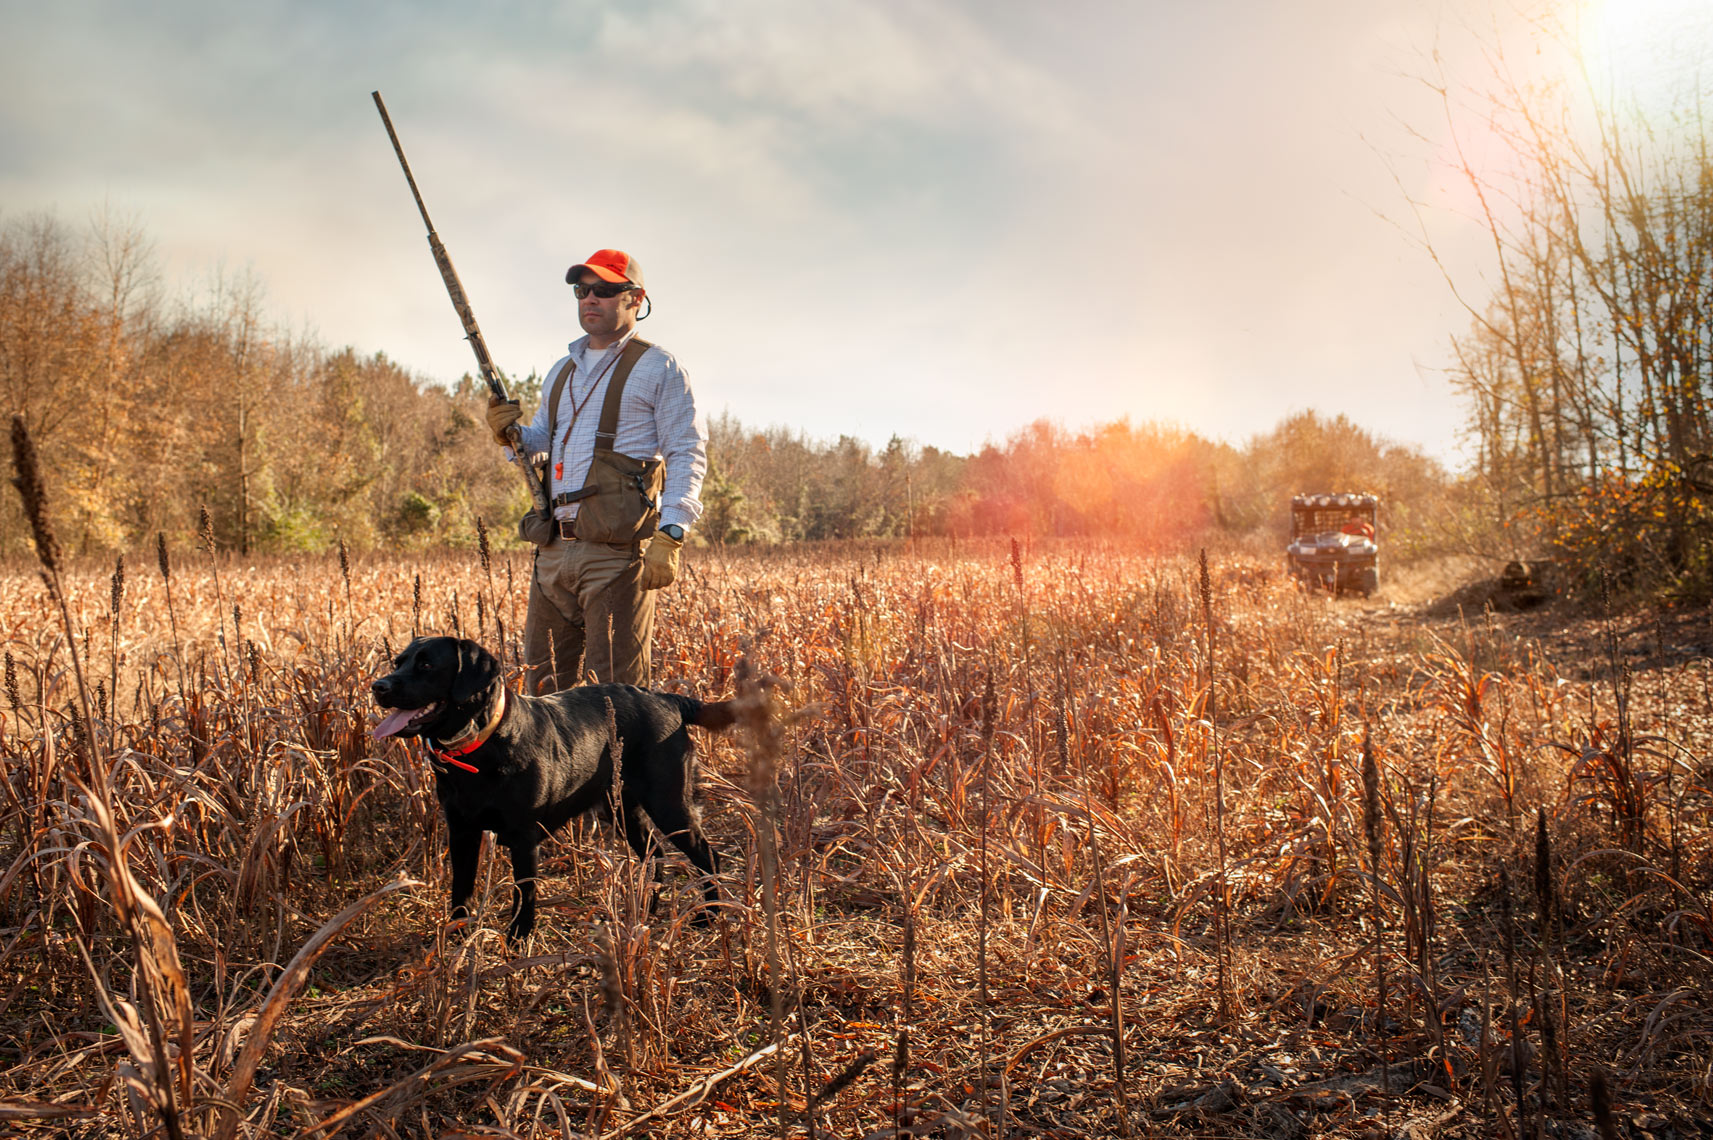 ©Robb Scharetg - Dean, Bena and Squire, bird hunting. .  DC photographer , SF photograper